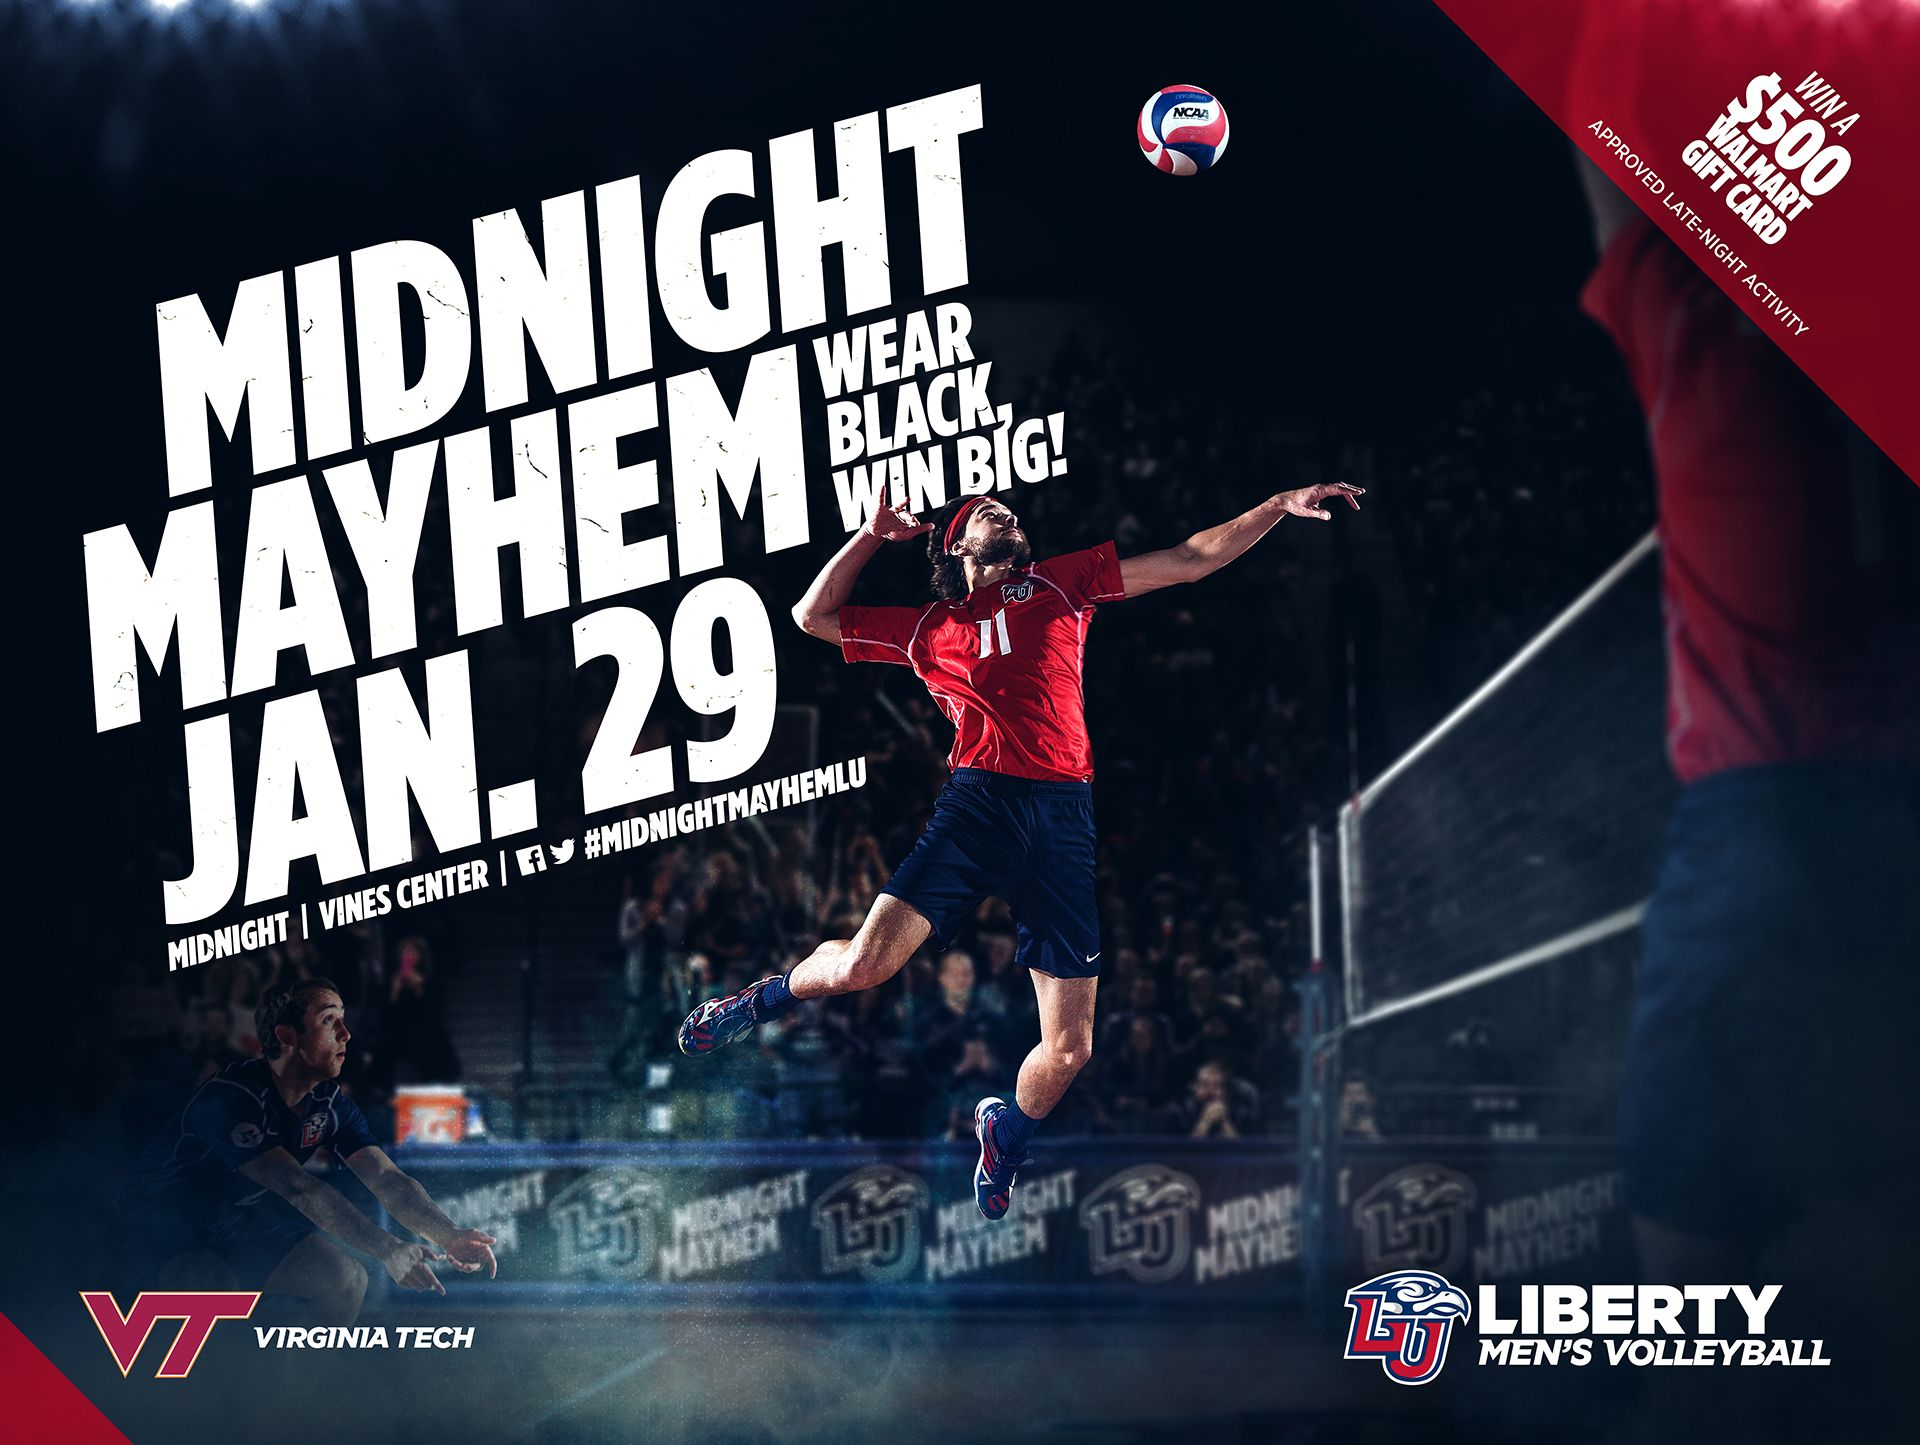 Here Is Another Poster To Advertise Men 39 S Volleyball Midnight Mayhem They Will Play A M Sports Graphic Design Sports Design Inspiration Sports Advertising